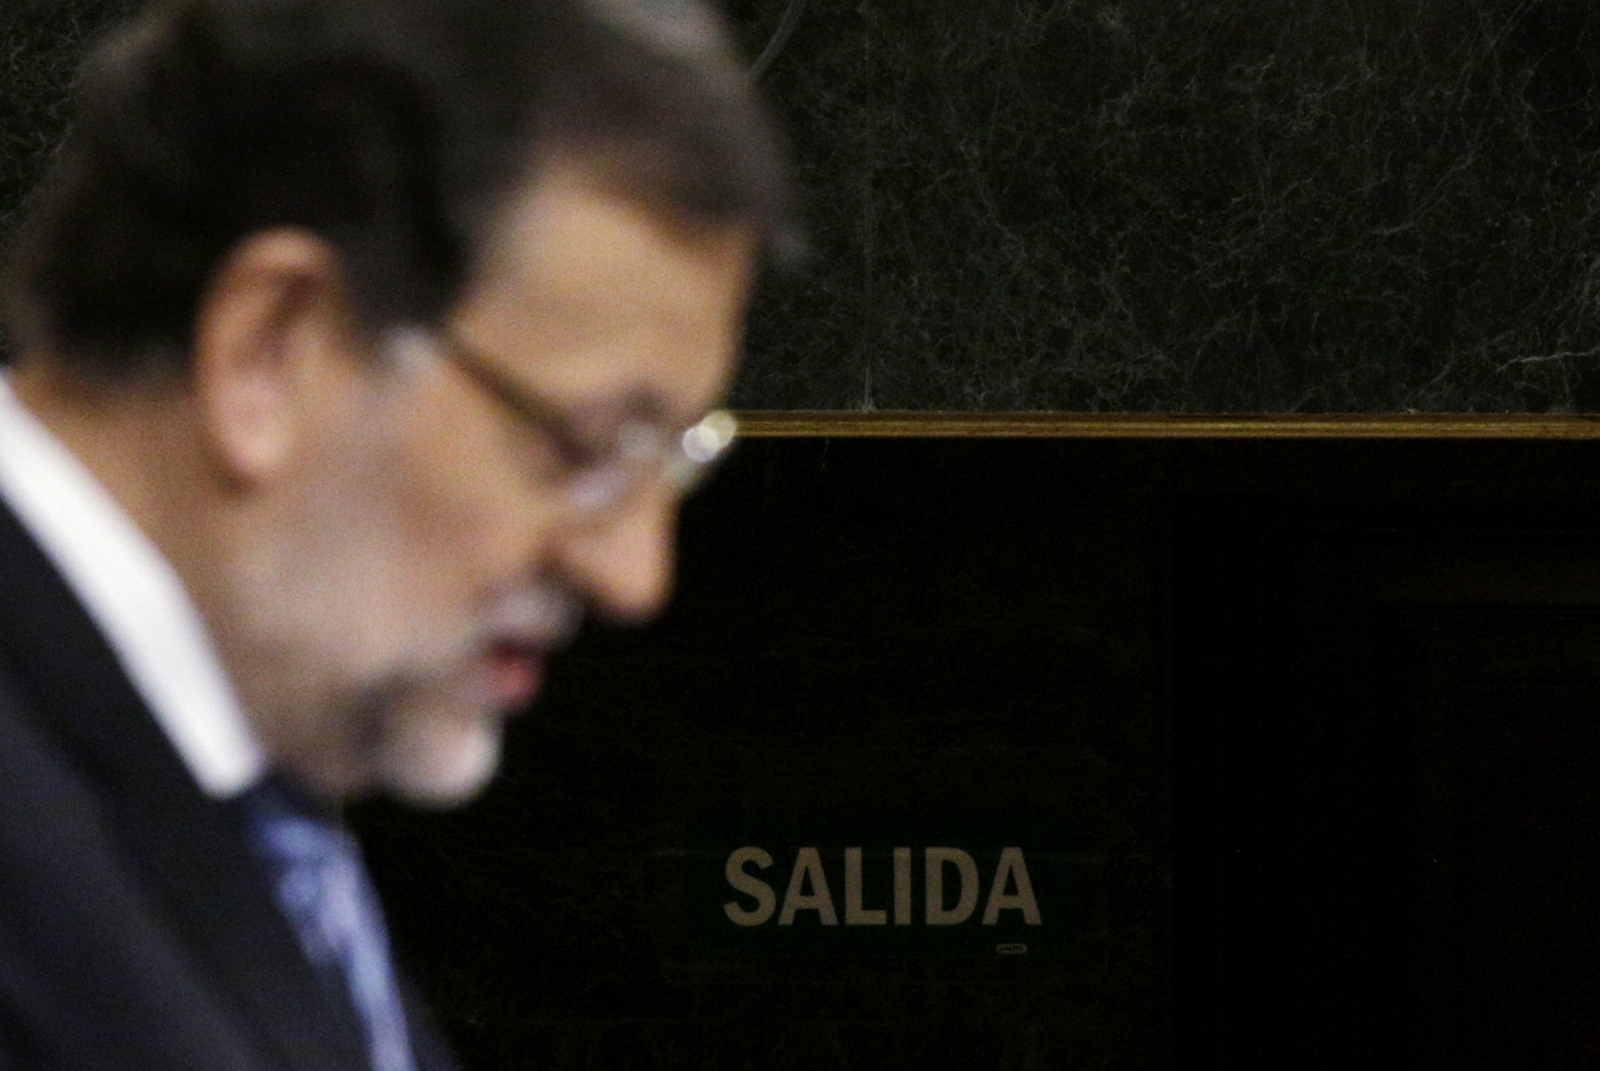 Spain's Prime Minister Mariano Rajoy delivers a speech presenting anti-corruption measures in front of an exit sign at Spanish parliament in Madrid, November 27, 2014.